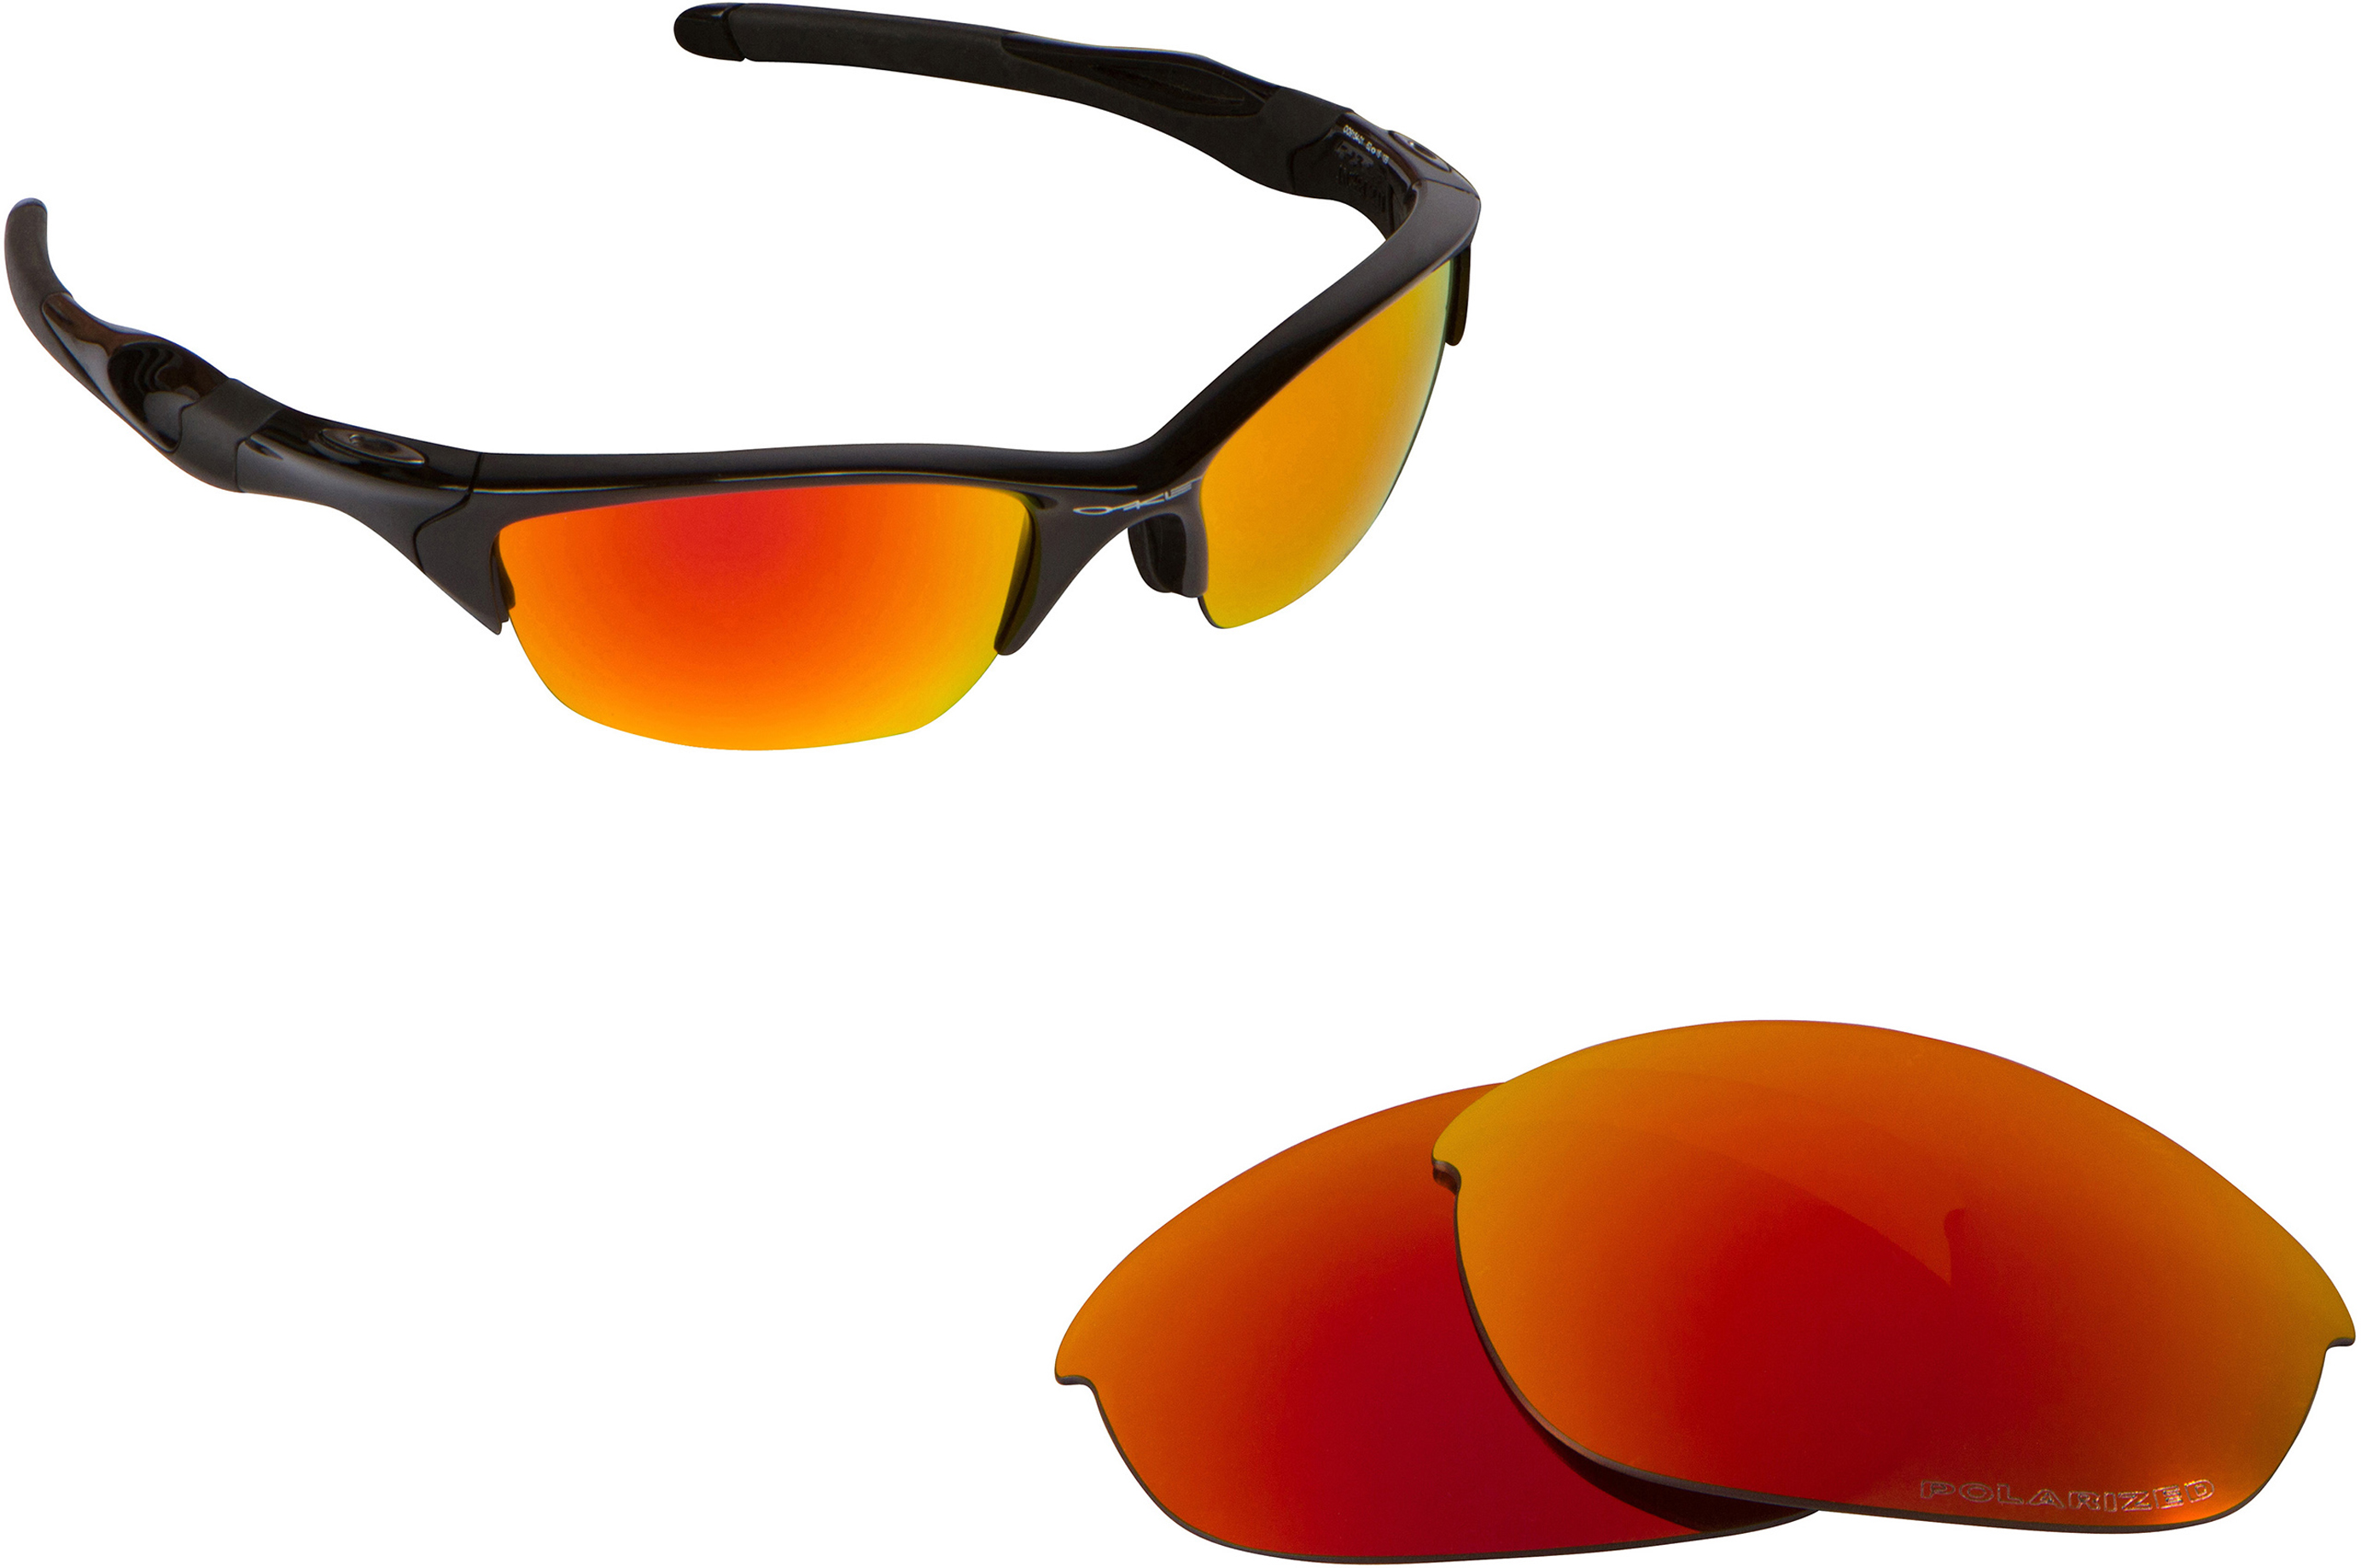 e24dc433d6 Jupiter LX Replacement Lenses by SEEK OPTICS to fit OAKLEY ...